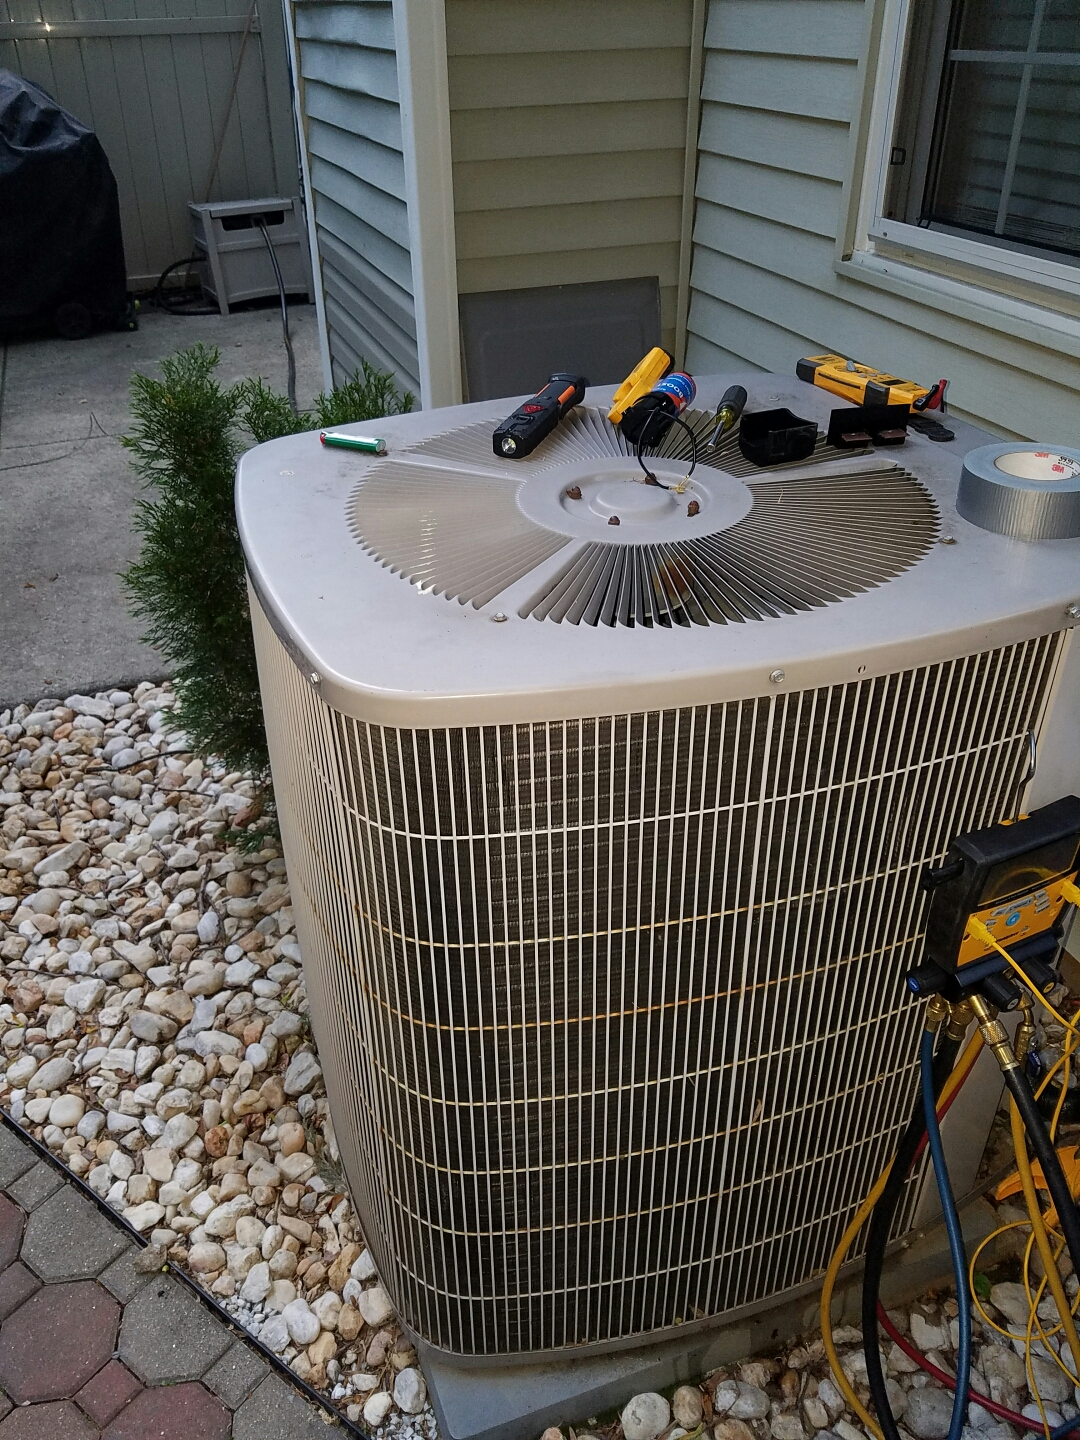 Feasterville Trevose, PA - Residential Air conditioning service call in Feasterville Trevose, Bucks County. Carrier ac unit blows warm air.  check air conditioner operation.  found bad compressor.  suggested to replace compressor and recharge unit with fresh refrigerant.